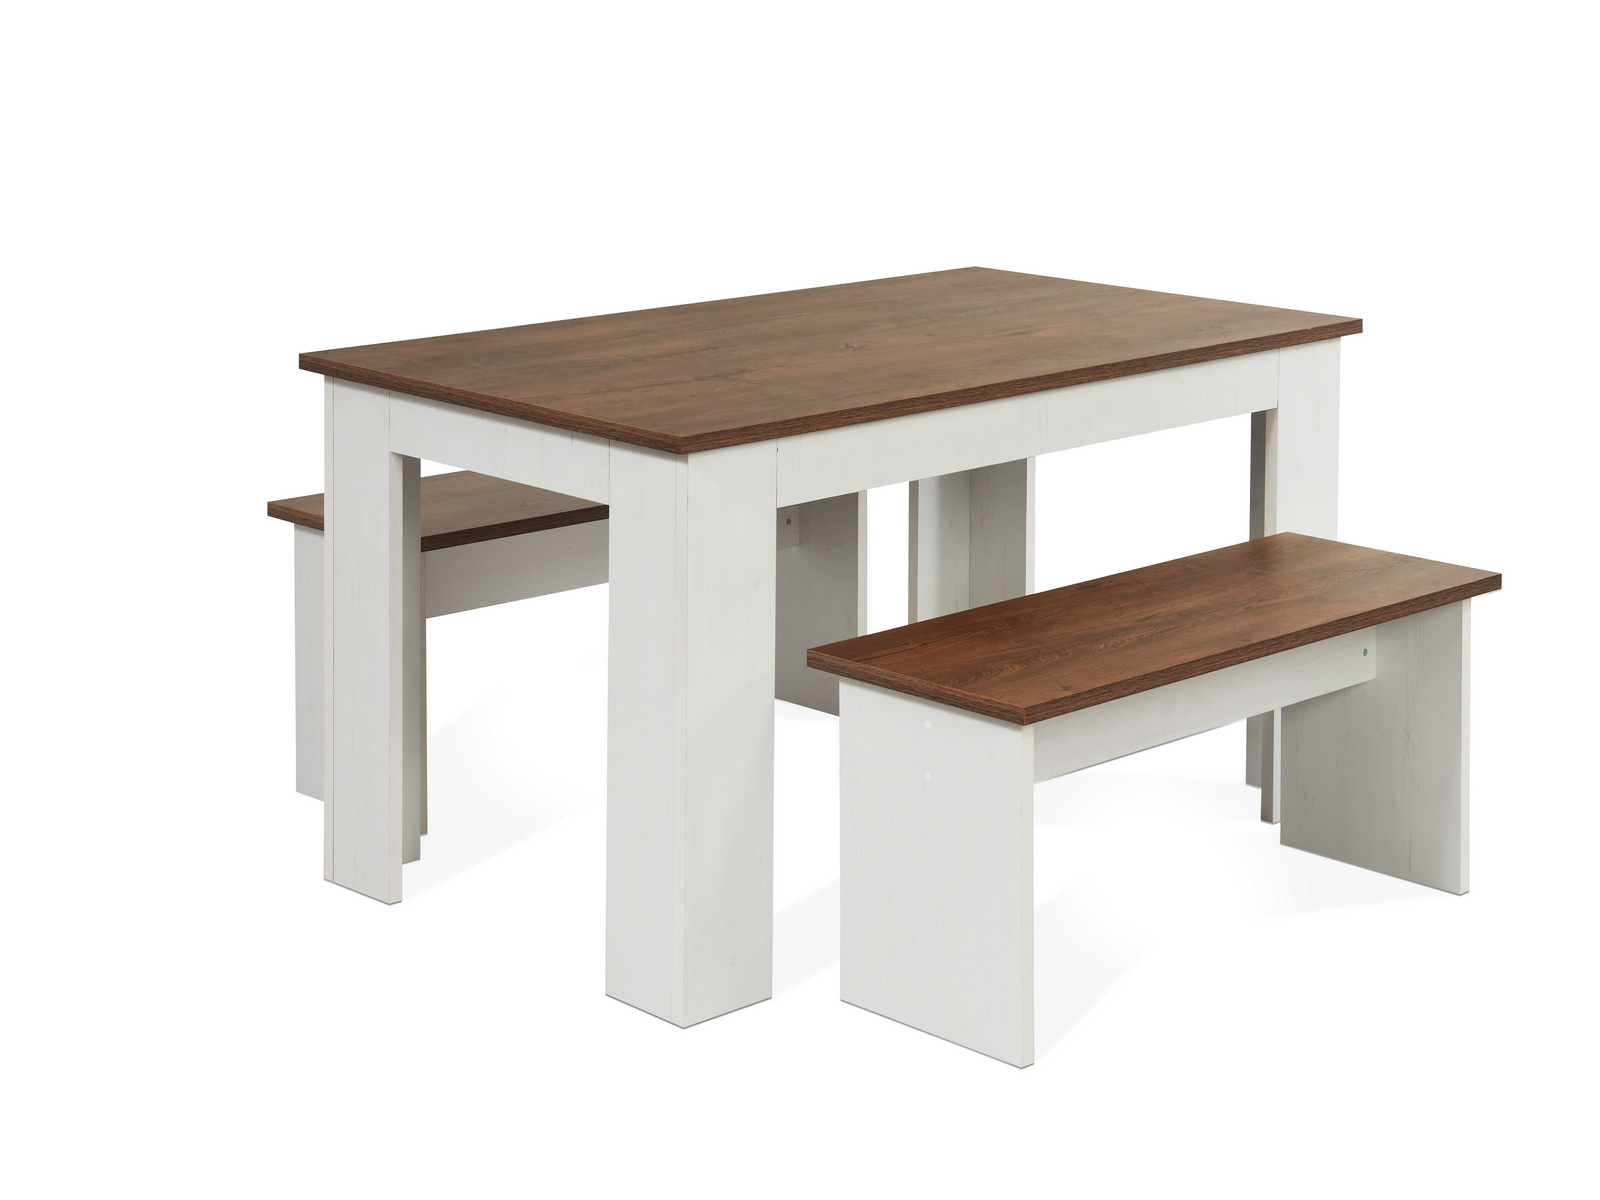 Prime Details About Kendal White Ash And Oak Dining Table And Bench Set Includes 2 Dining Benches Gmtry Best Dining Table And Chair Ideas Images Gmtryco